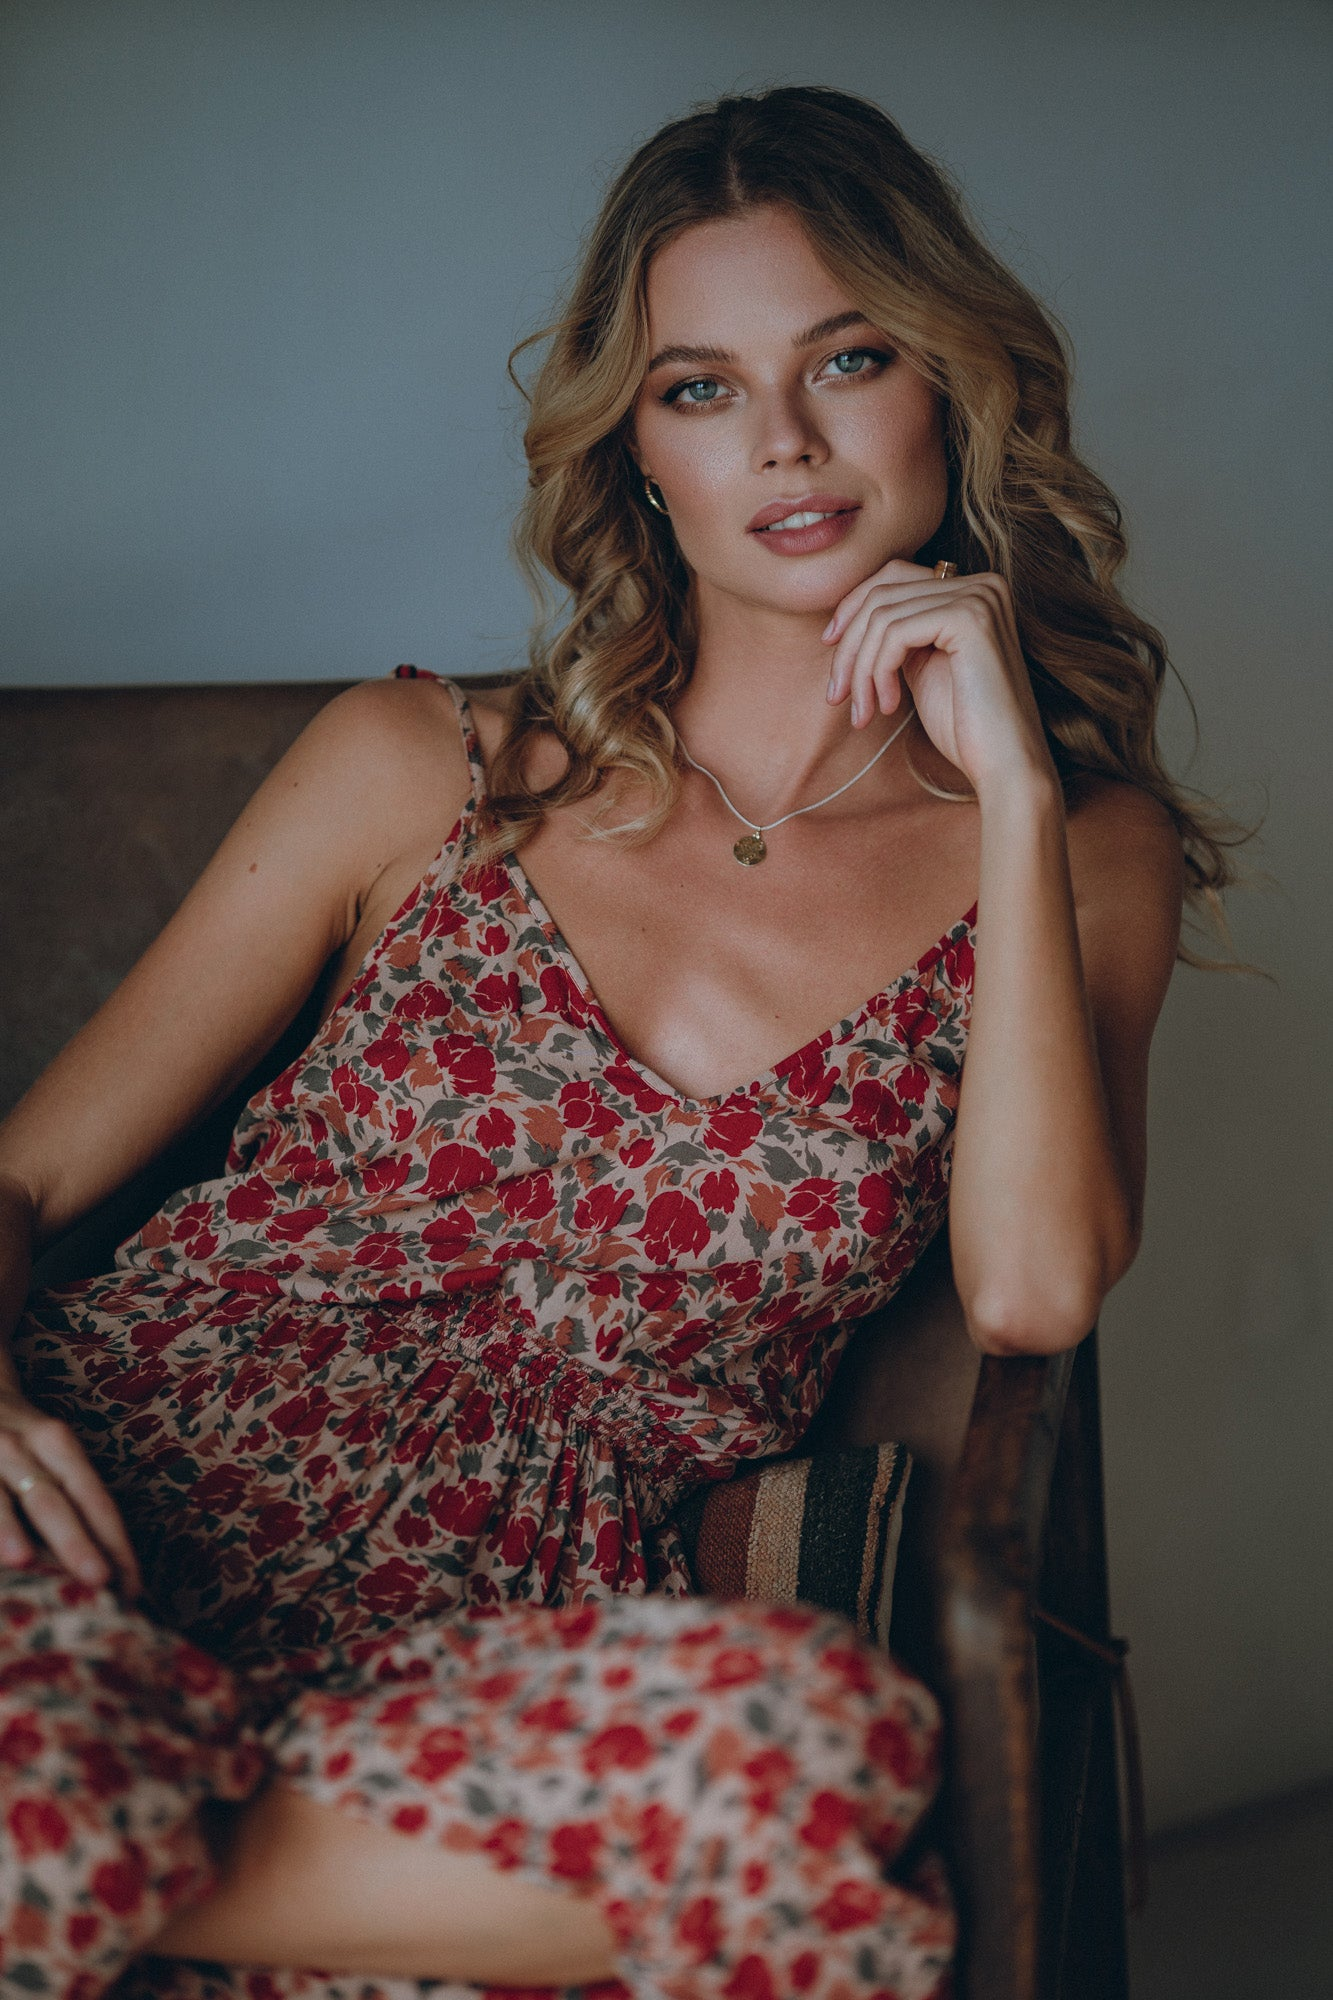 beautiful model in a floral dress